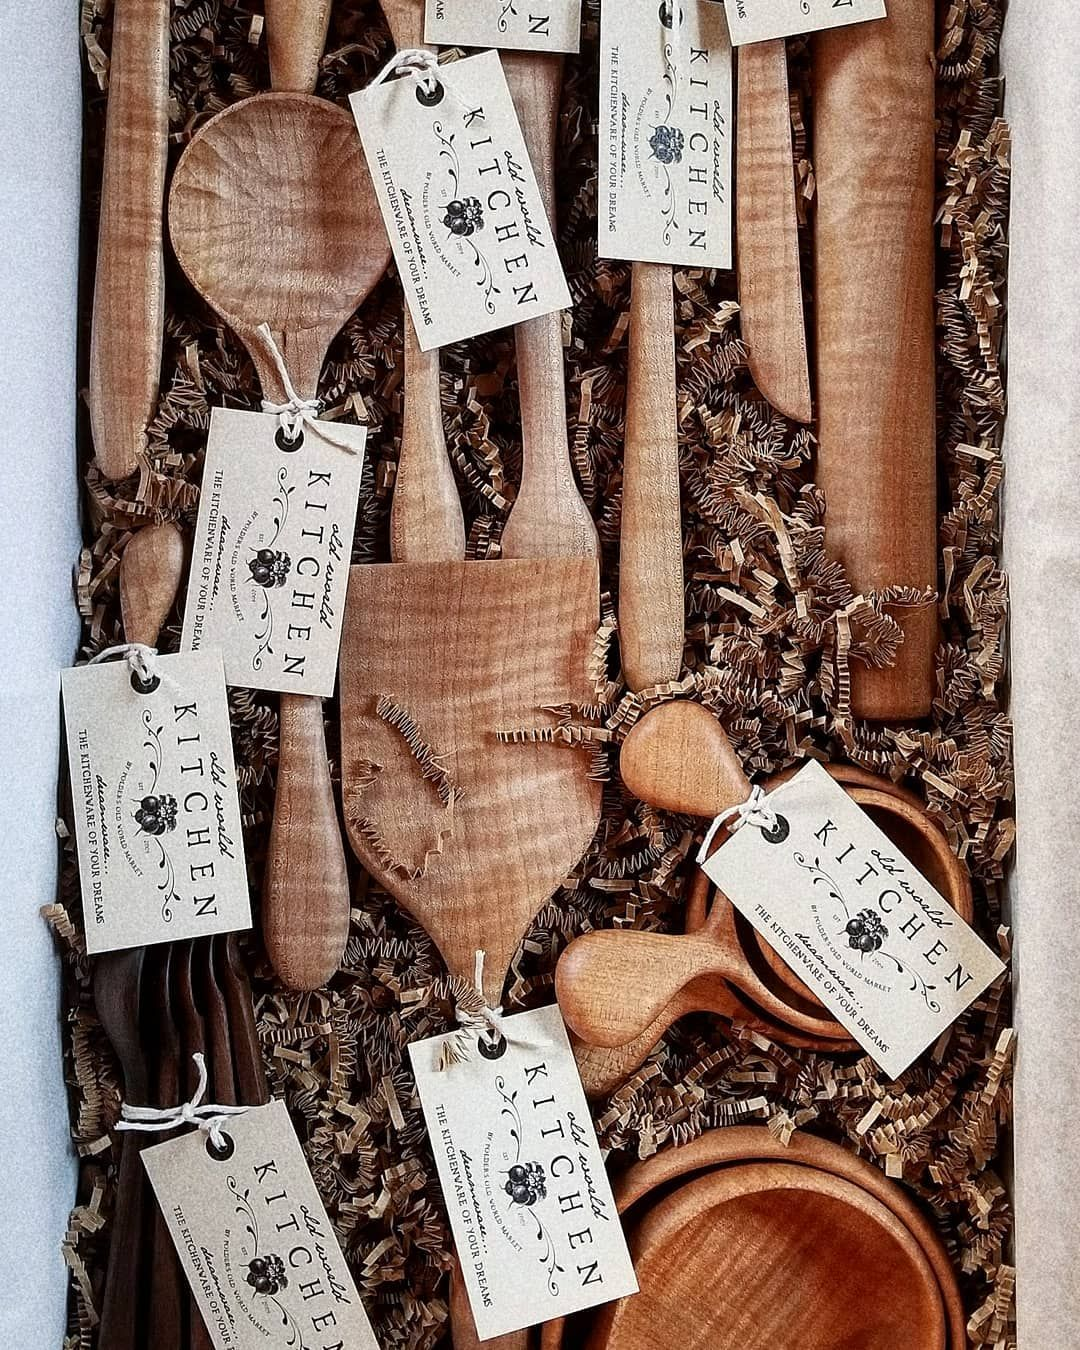 Look At All Of These Beautiful Wooden Kitchen Utensils Ready To Go To Their Hopefully Elated Purchaser Dreamware Handcraft Beautiful Box Old World Market